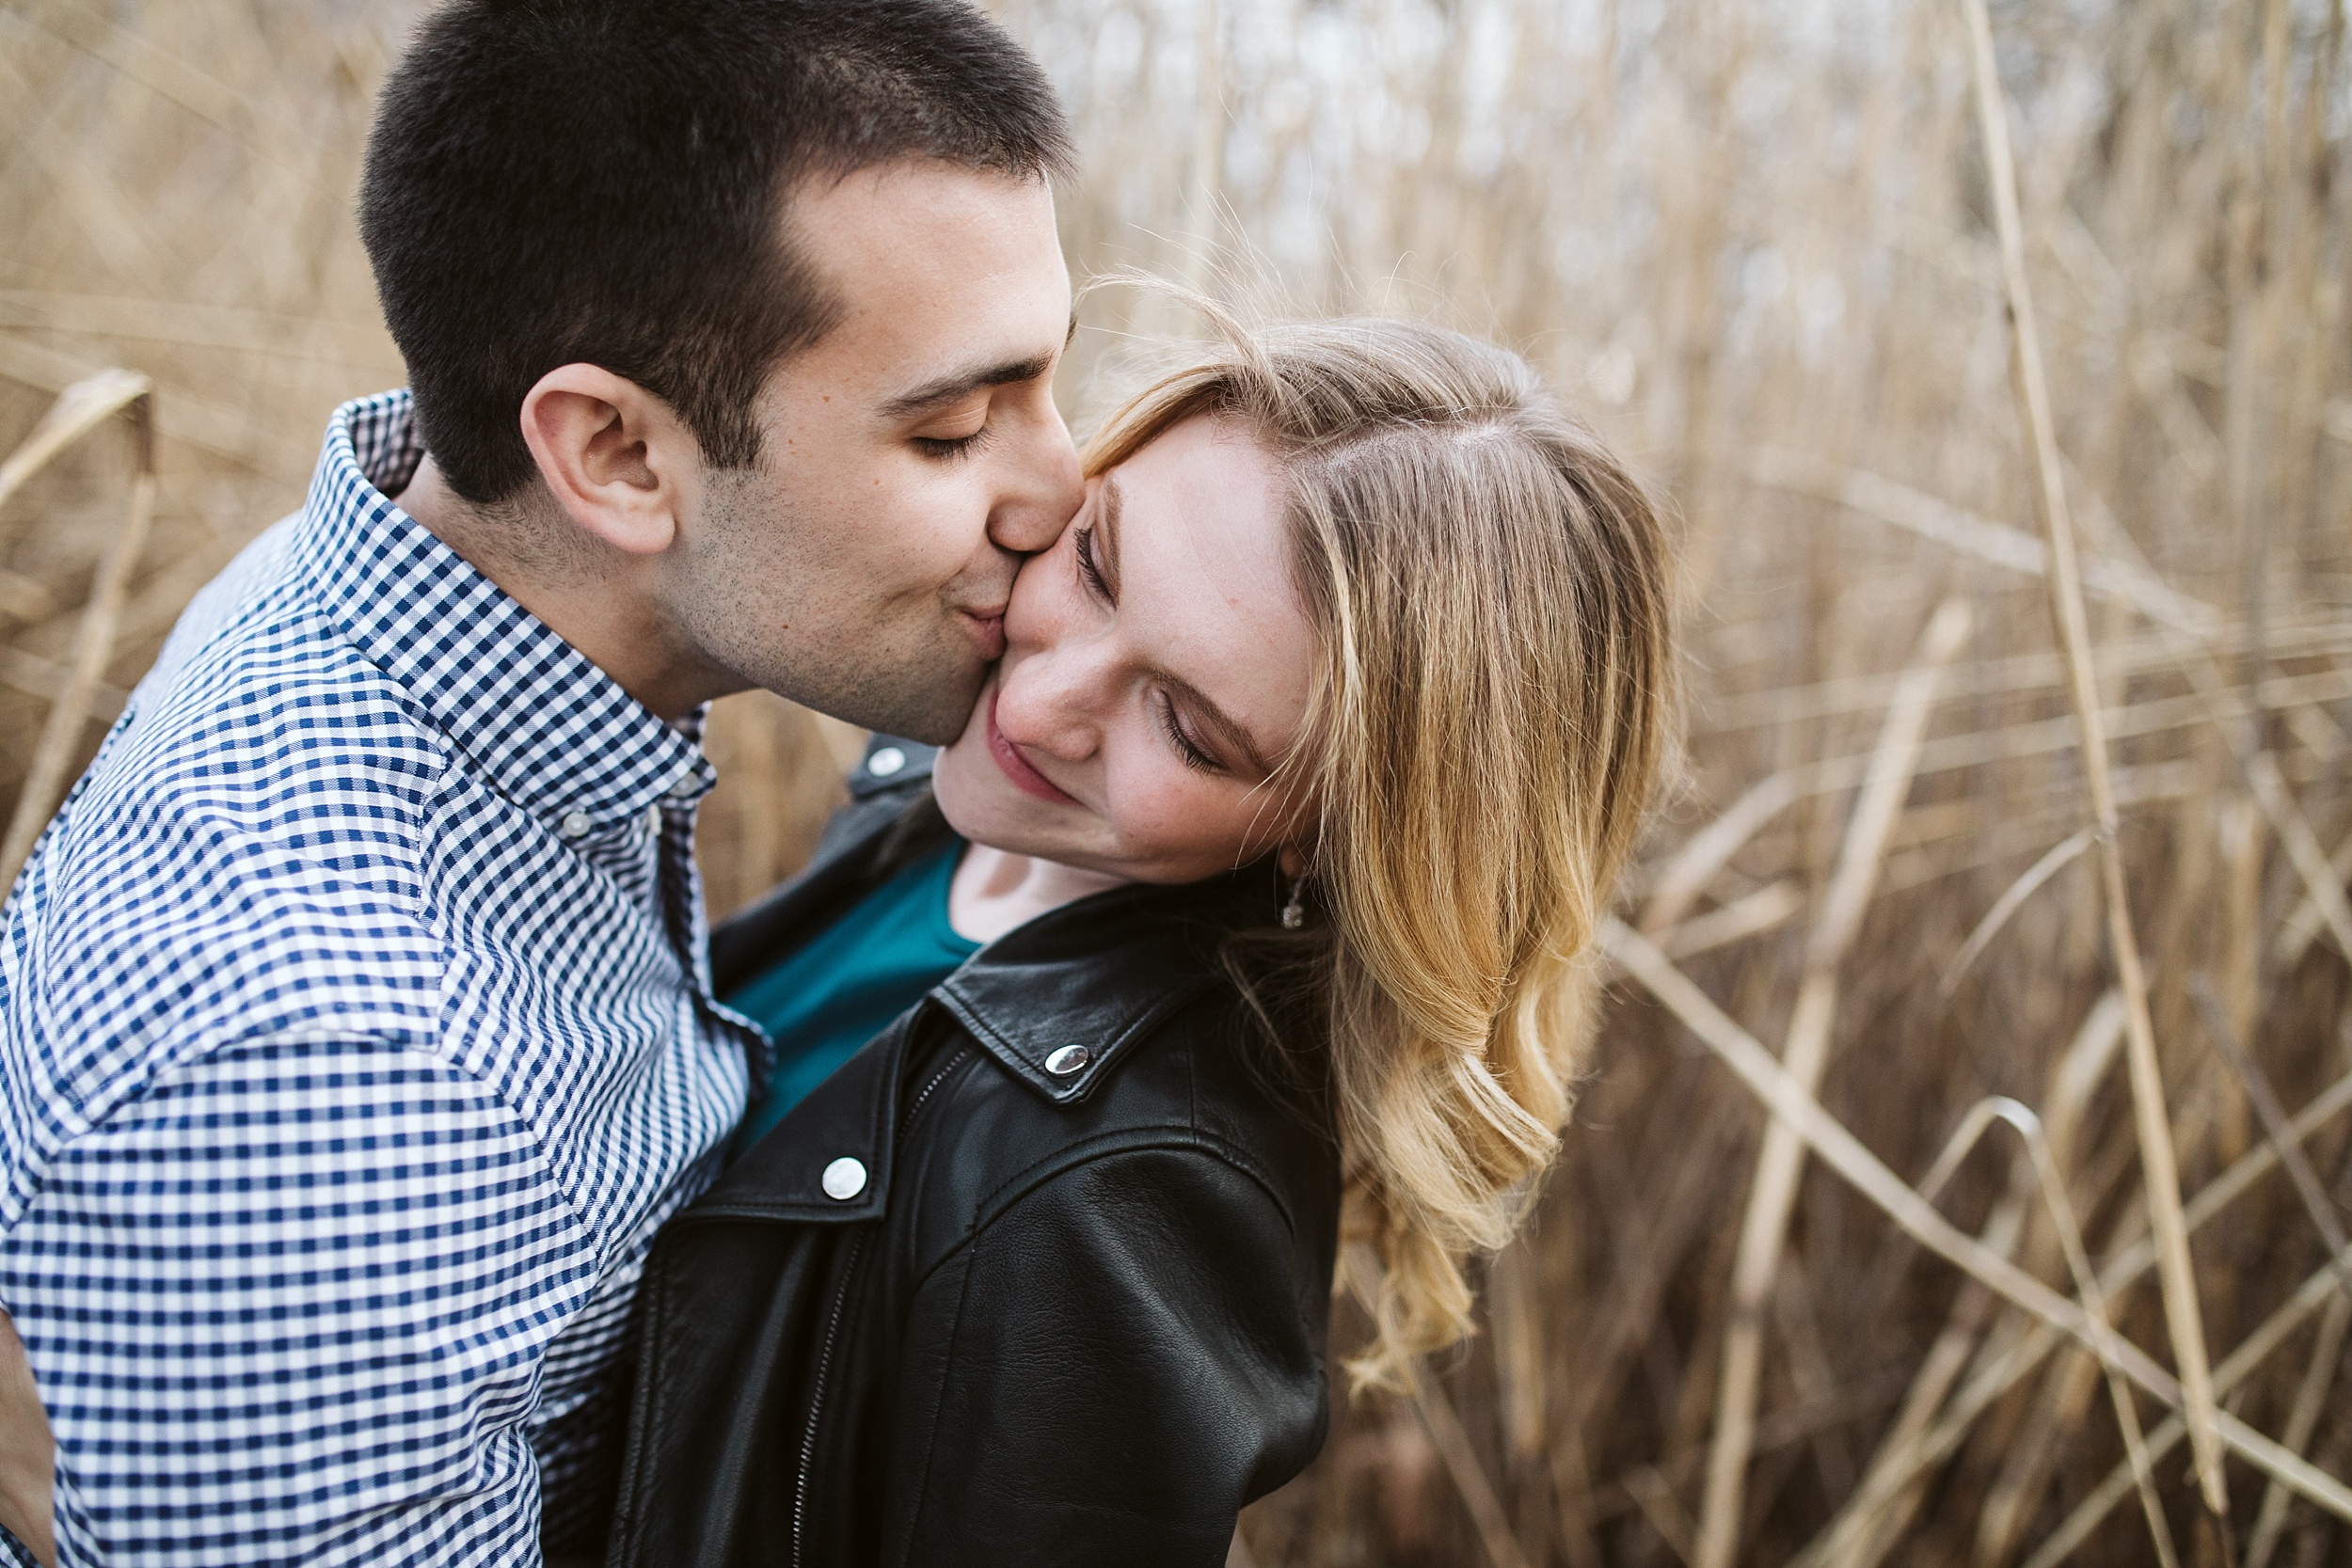 Allison Sullivan - Park Slope + Prospect Park Brooklyn Engagement Session 0011.JPG